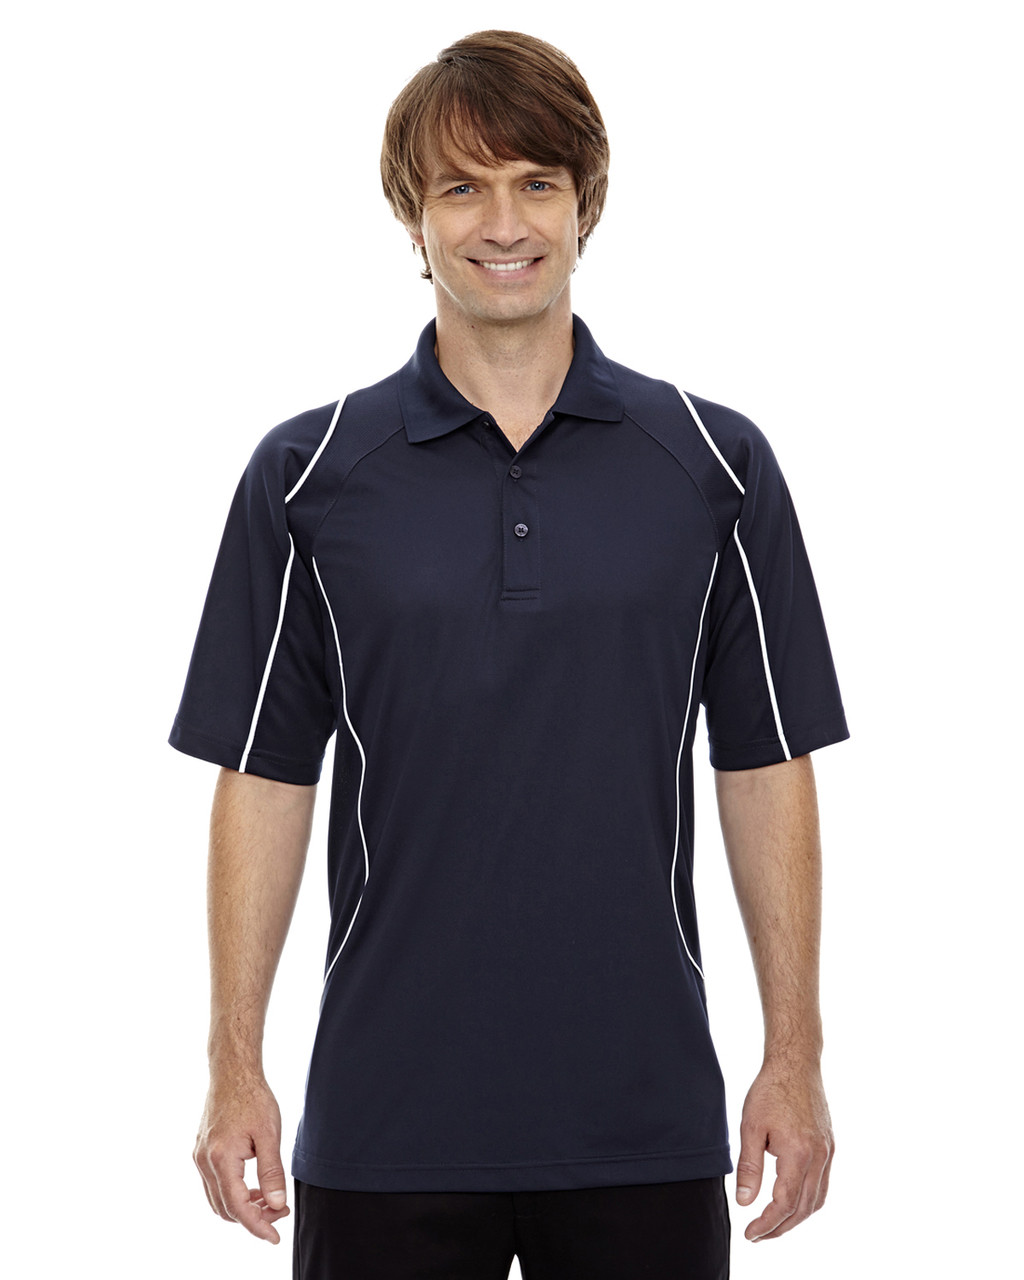 Classic Navy - 85107 Ash City - Extreme Eperformance Men's Velocity Polo Shirt with Piping